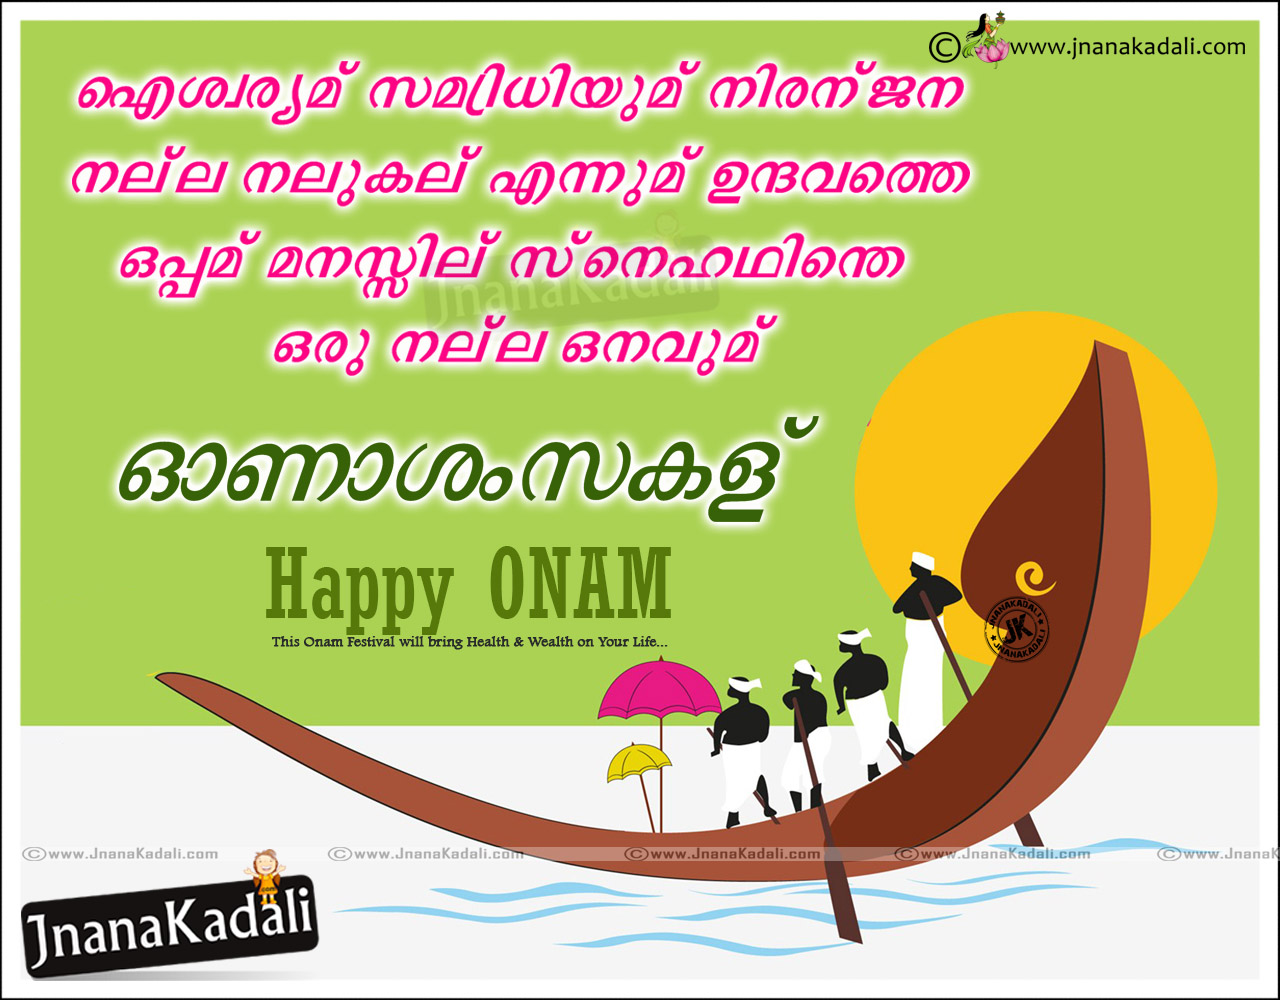 about onam in malayalam language Onam festival of kerrala – india onam is the biggest festival of the year in india's southern state of kerala onam corresponds with the malayalam new year.